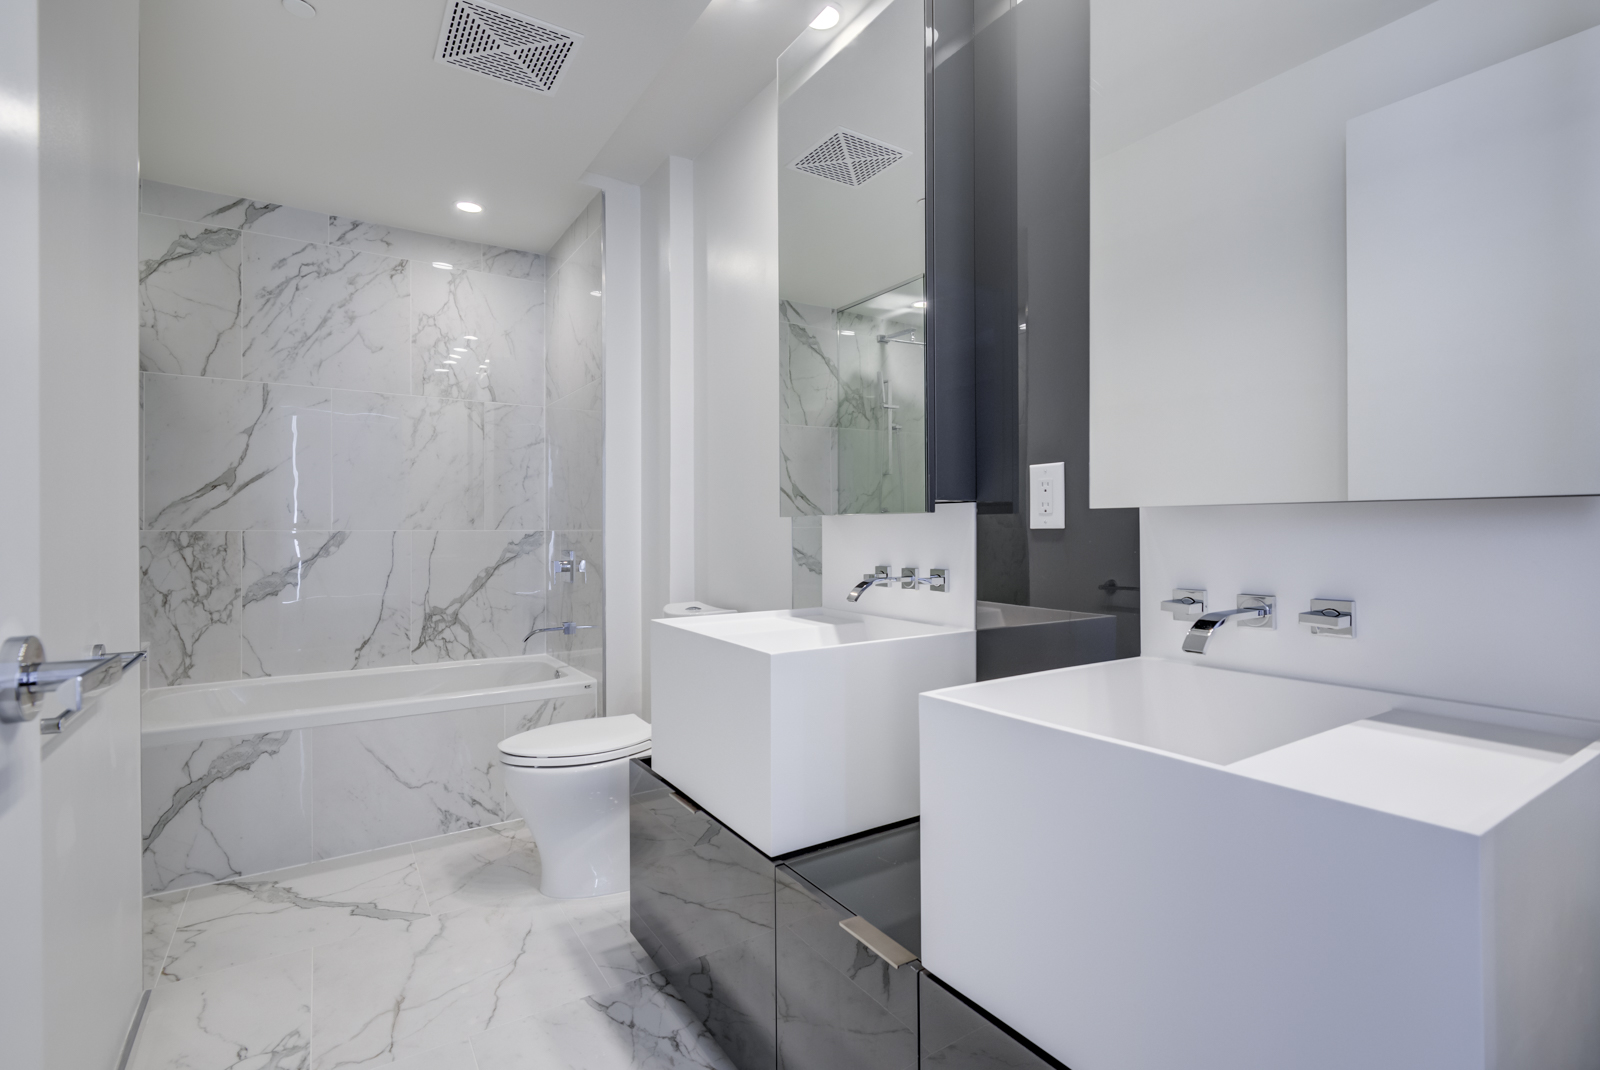 It's also very luxurious, using marble for the floors, walls and tub.